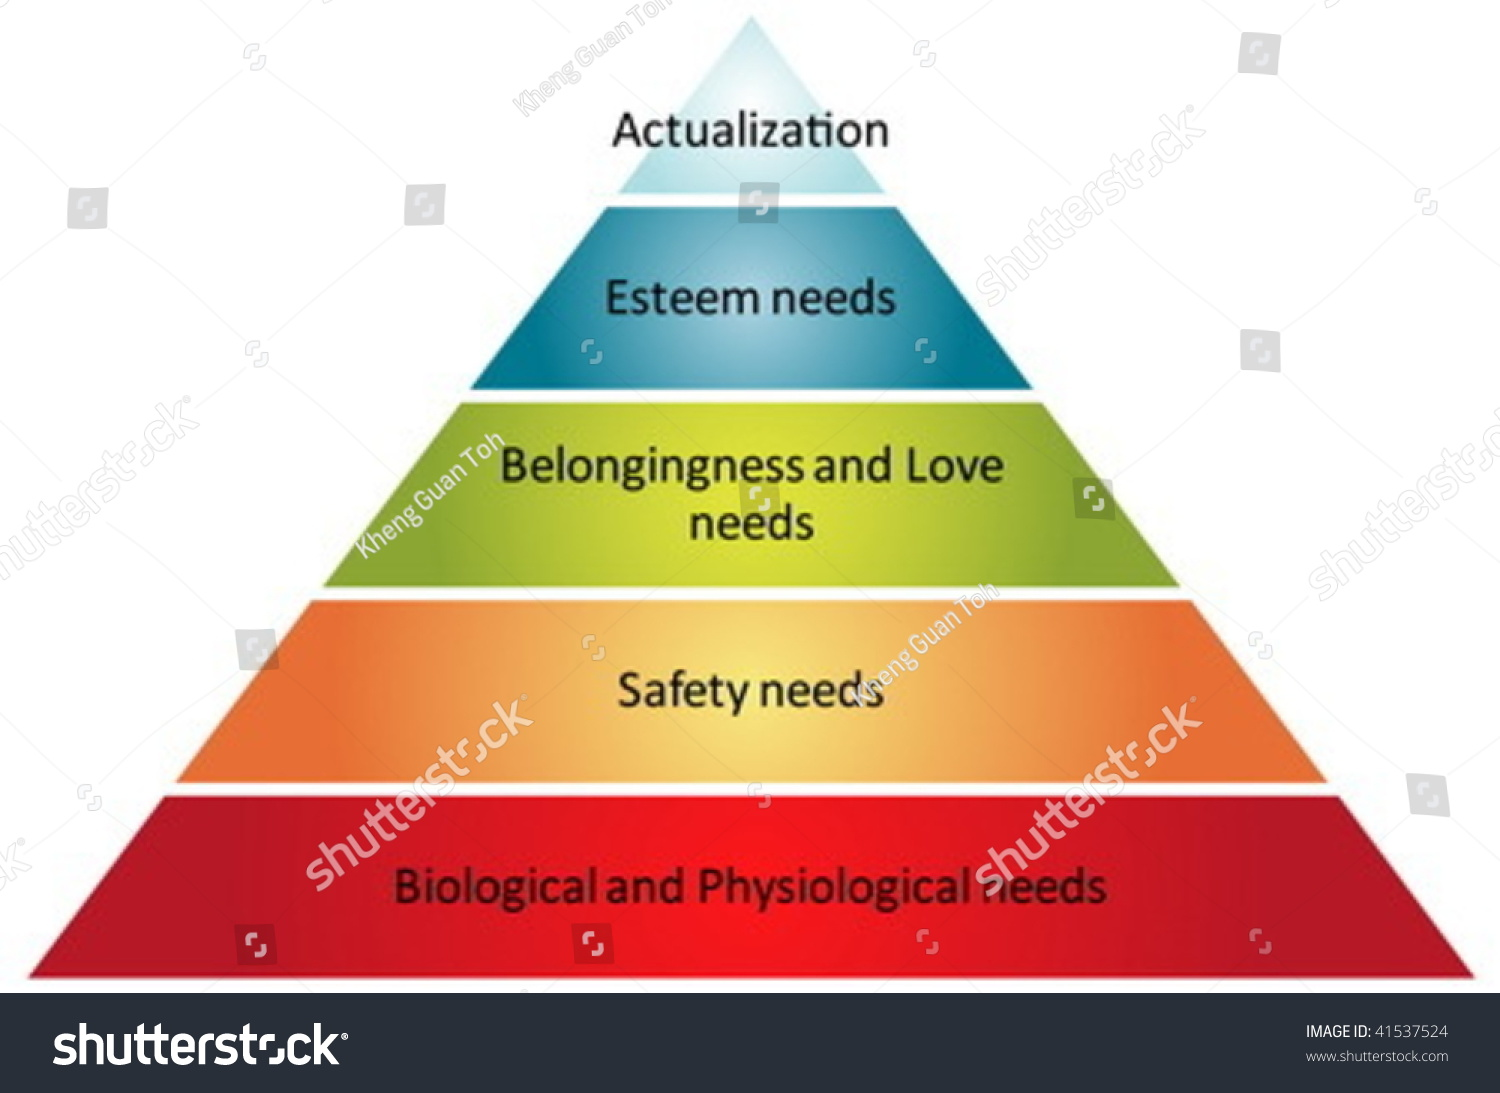 heirarchy of needs business strategy management process concept    heirarchy of needs business strategy management process concept diagram illustration       shutterstock